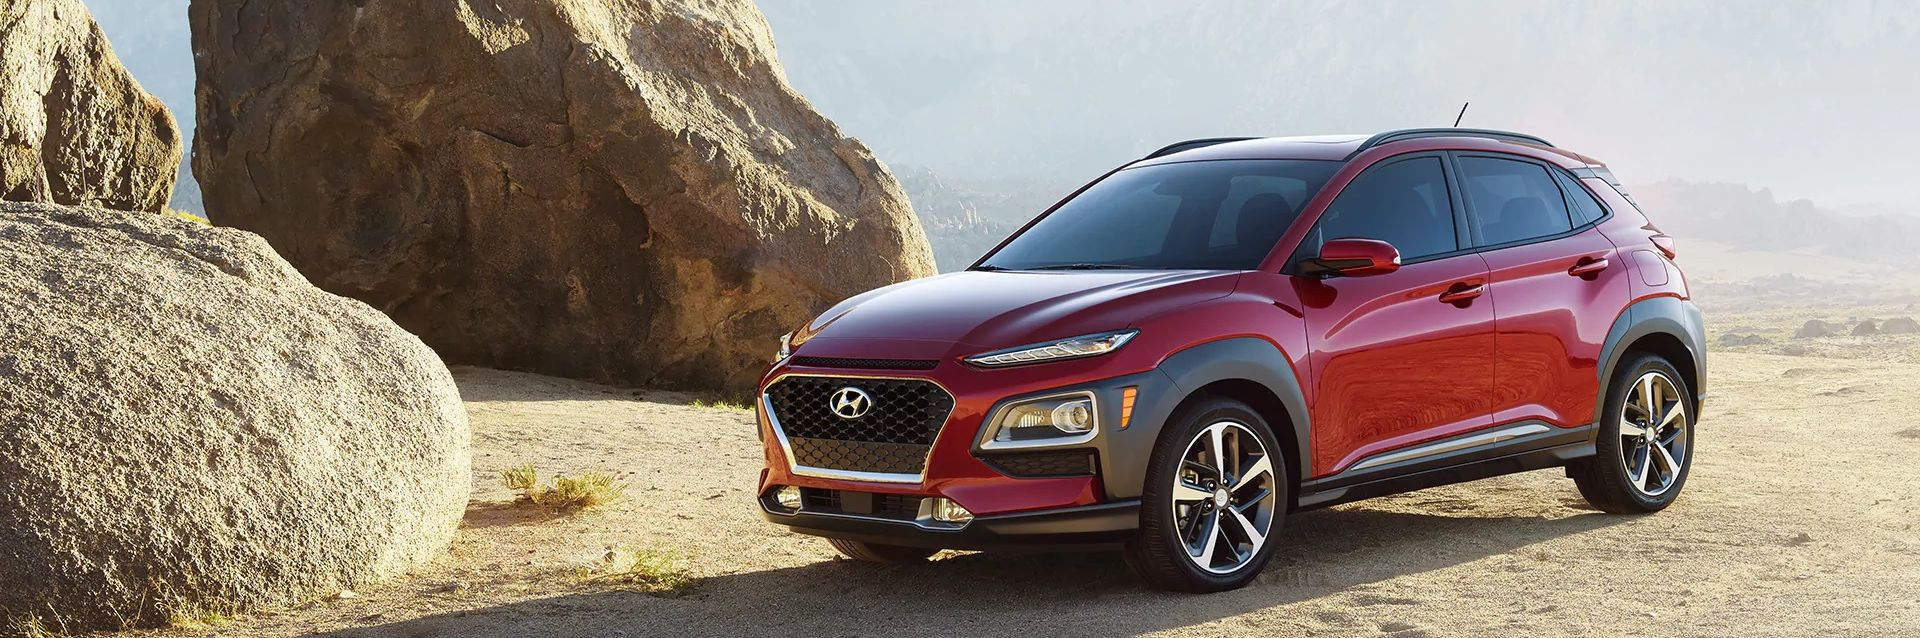 2019 Hyundai Kona Leasing near Arlington, VA